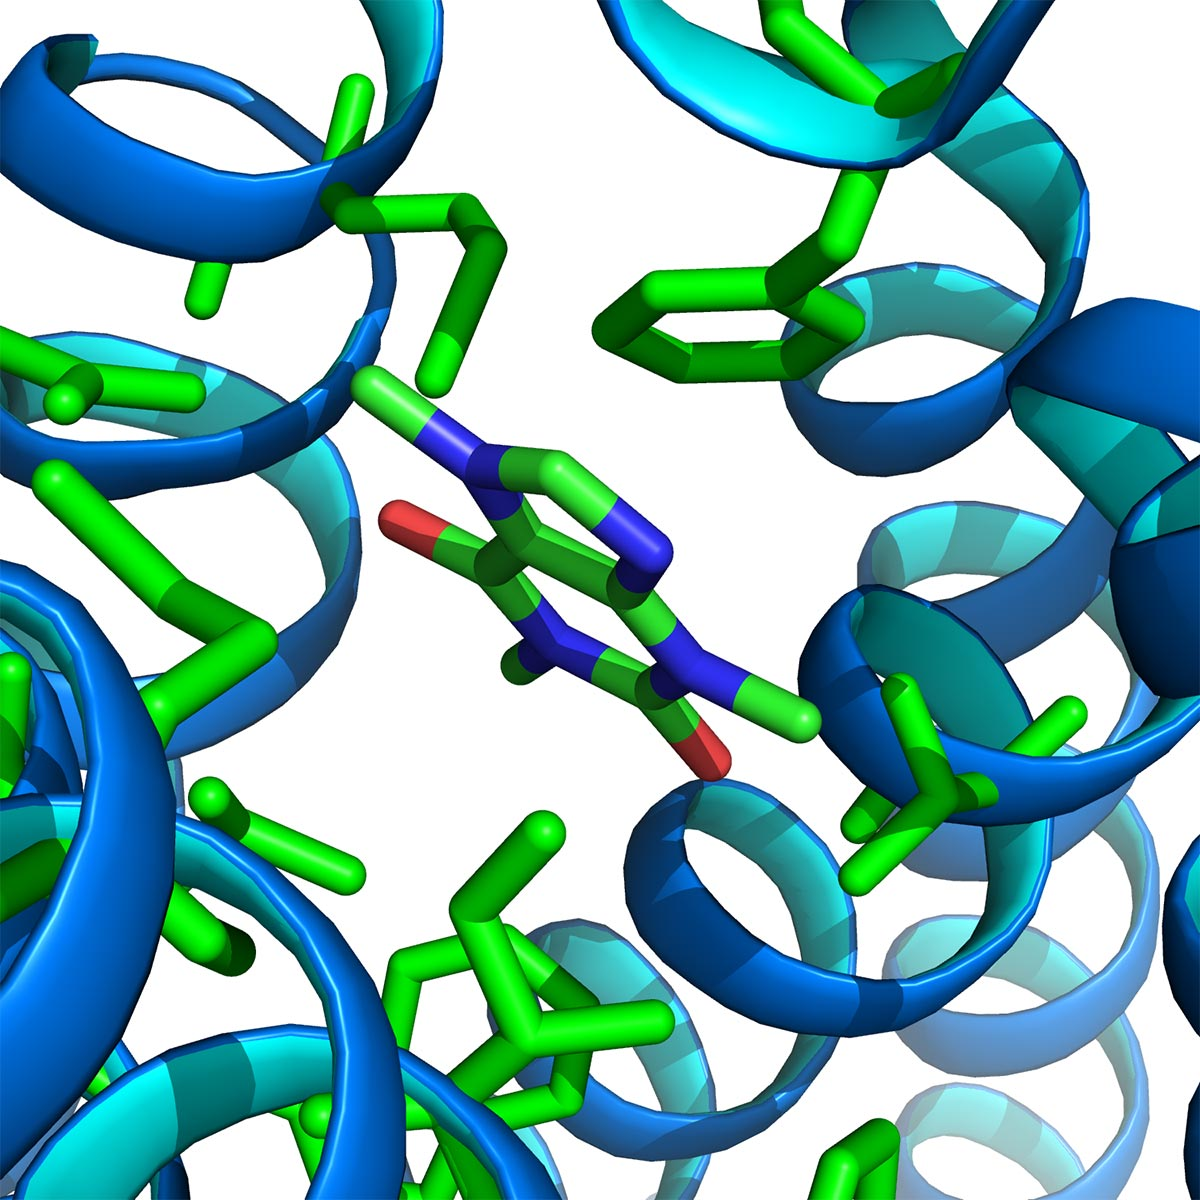 Novel ligand-bound GPCR structures